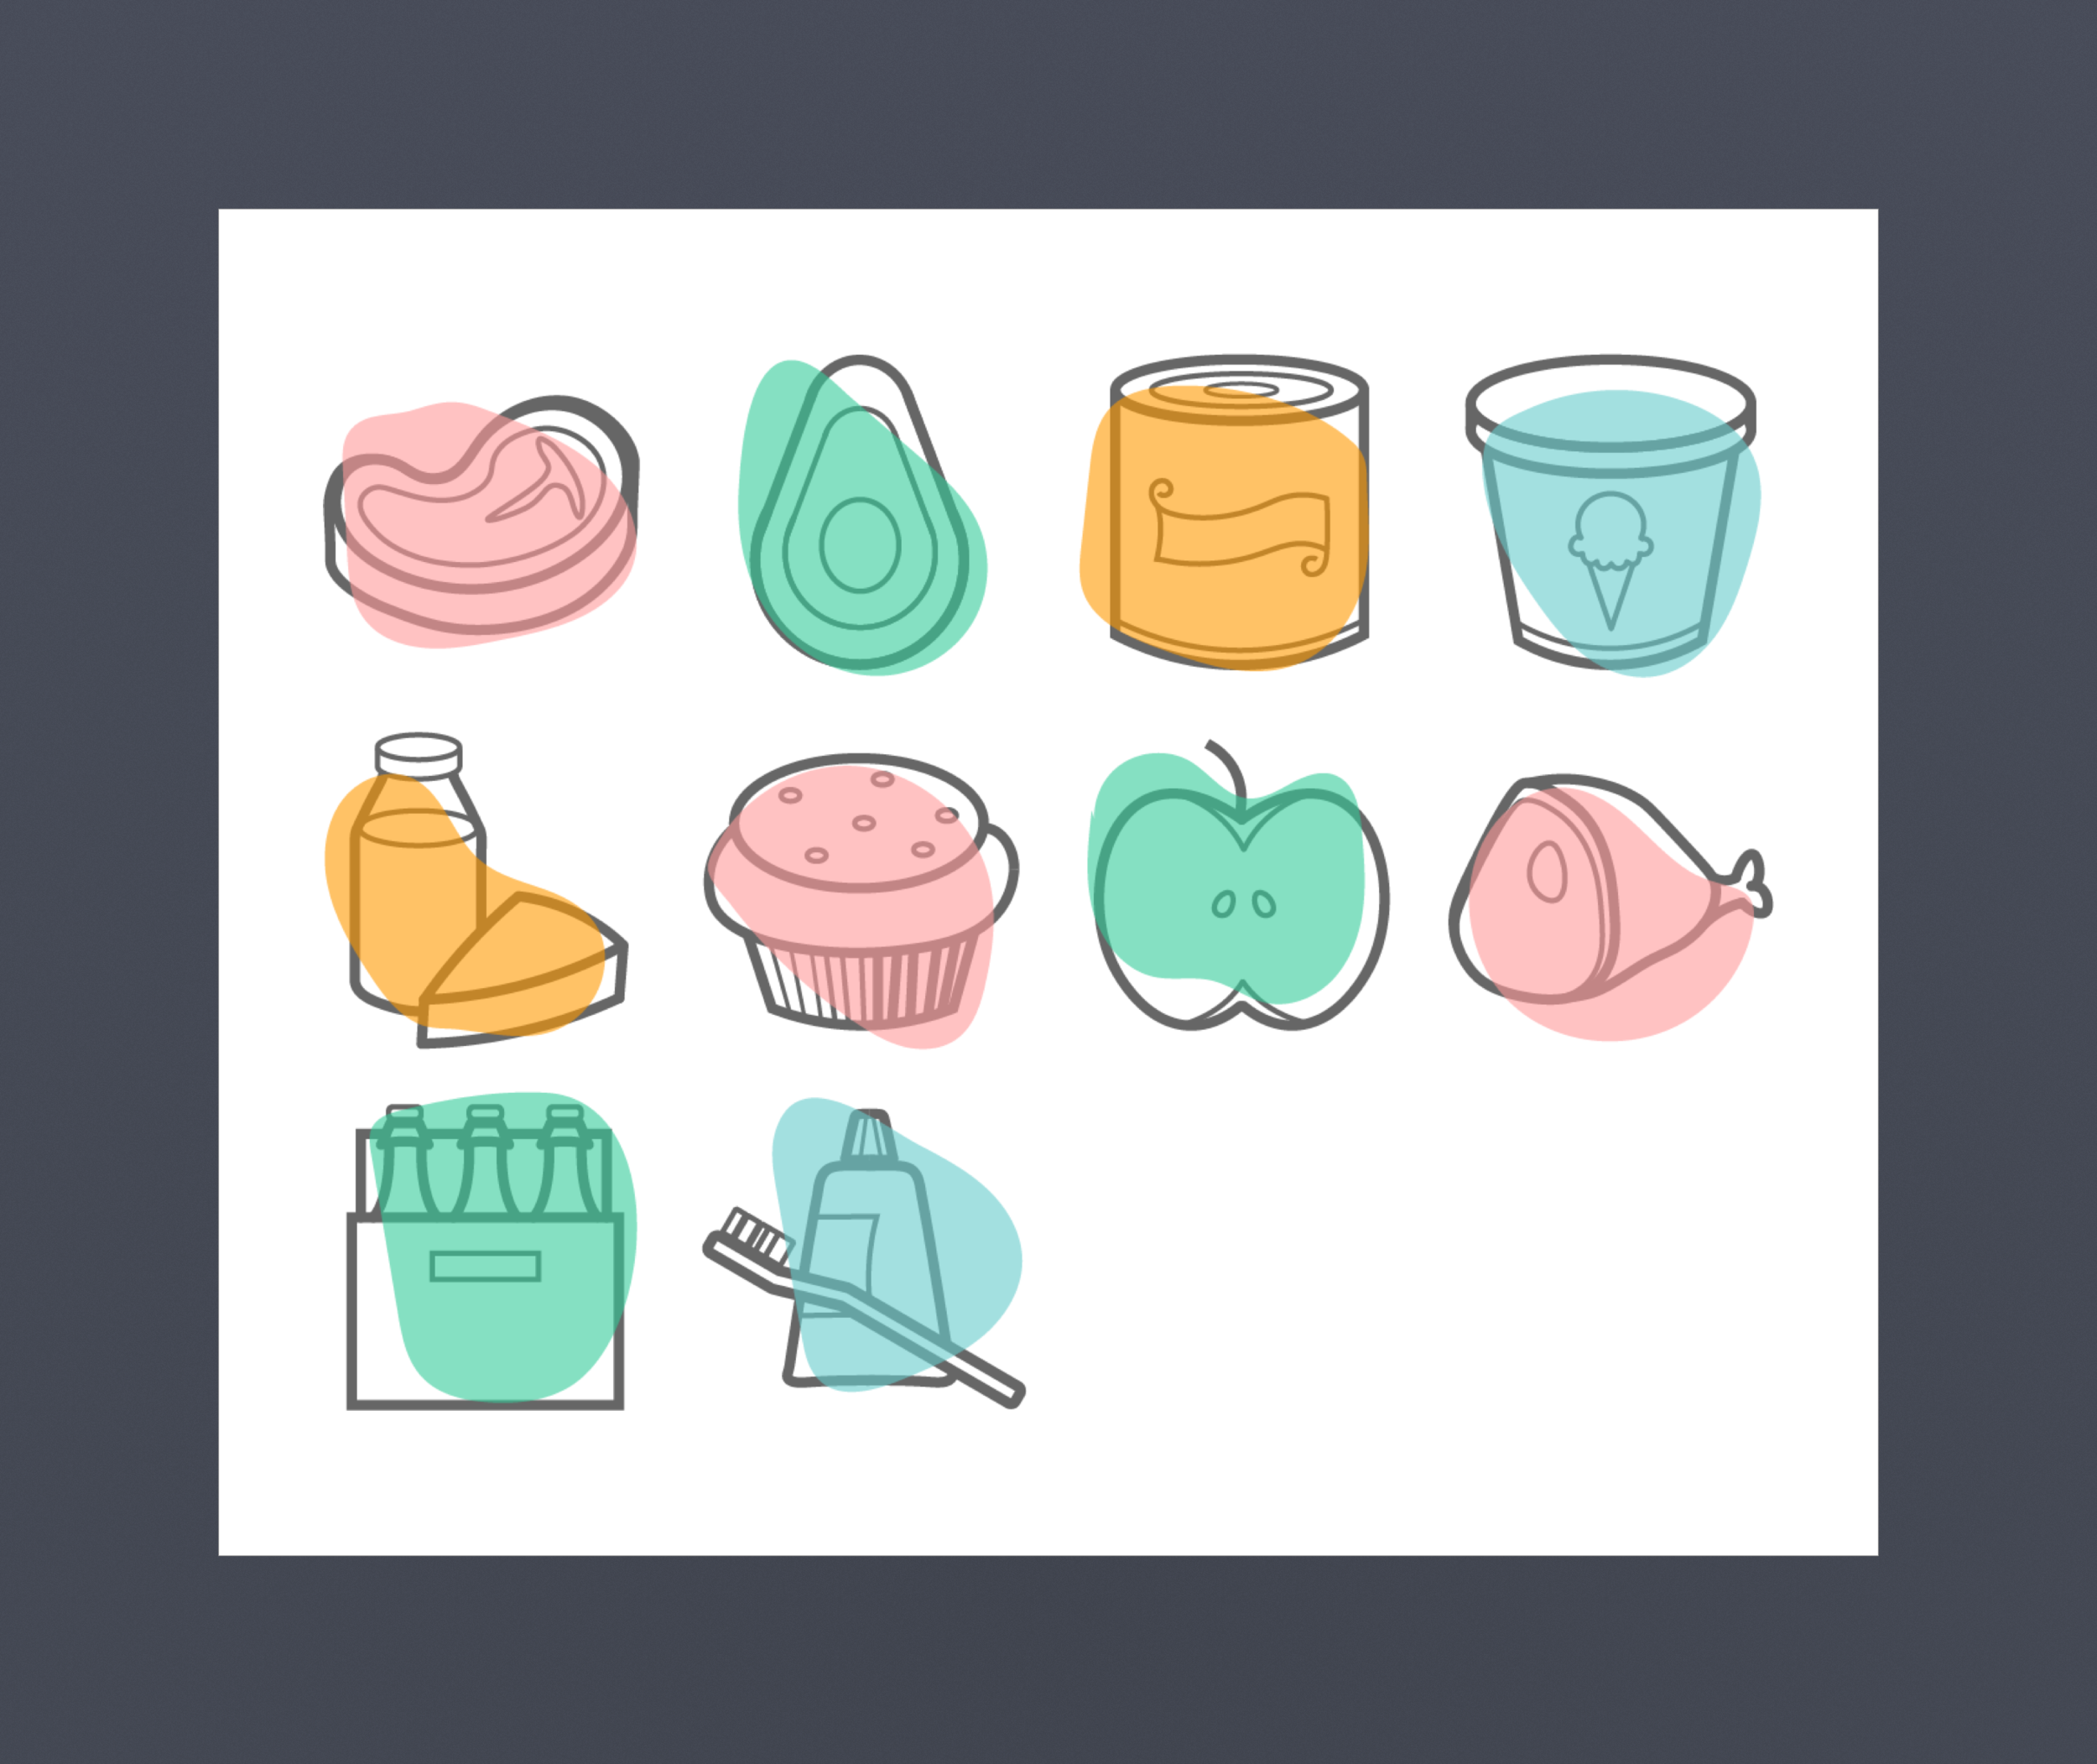 grocery store icons - visual design